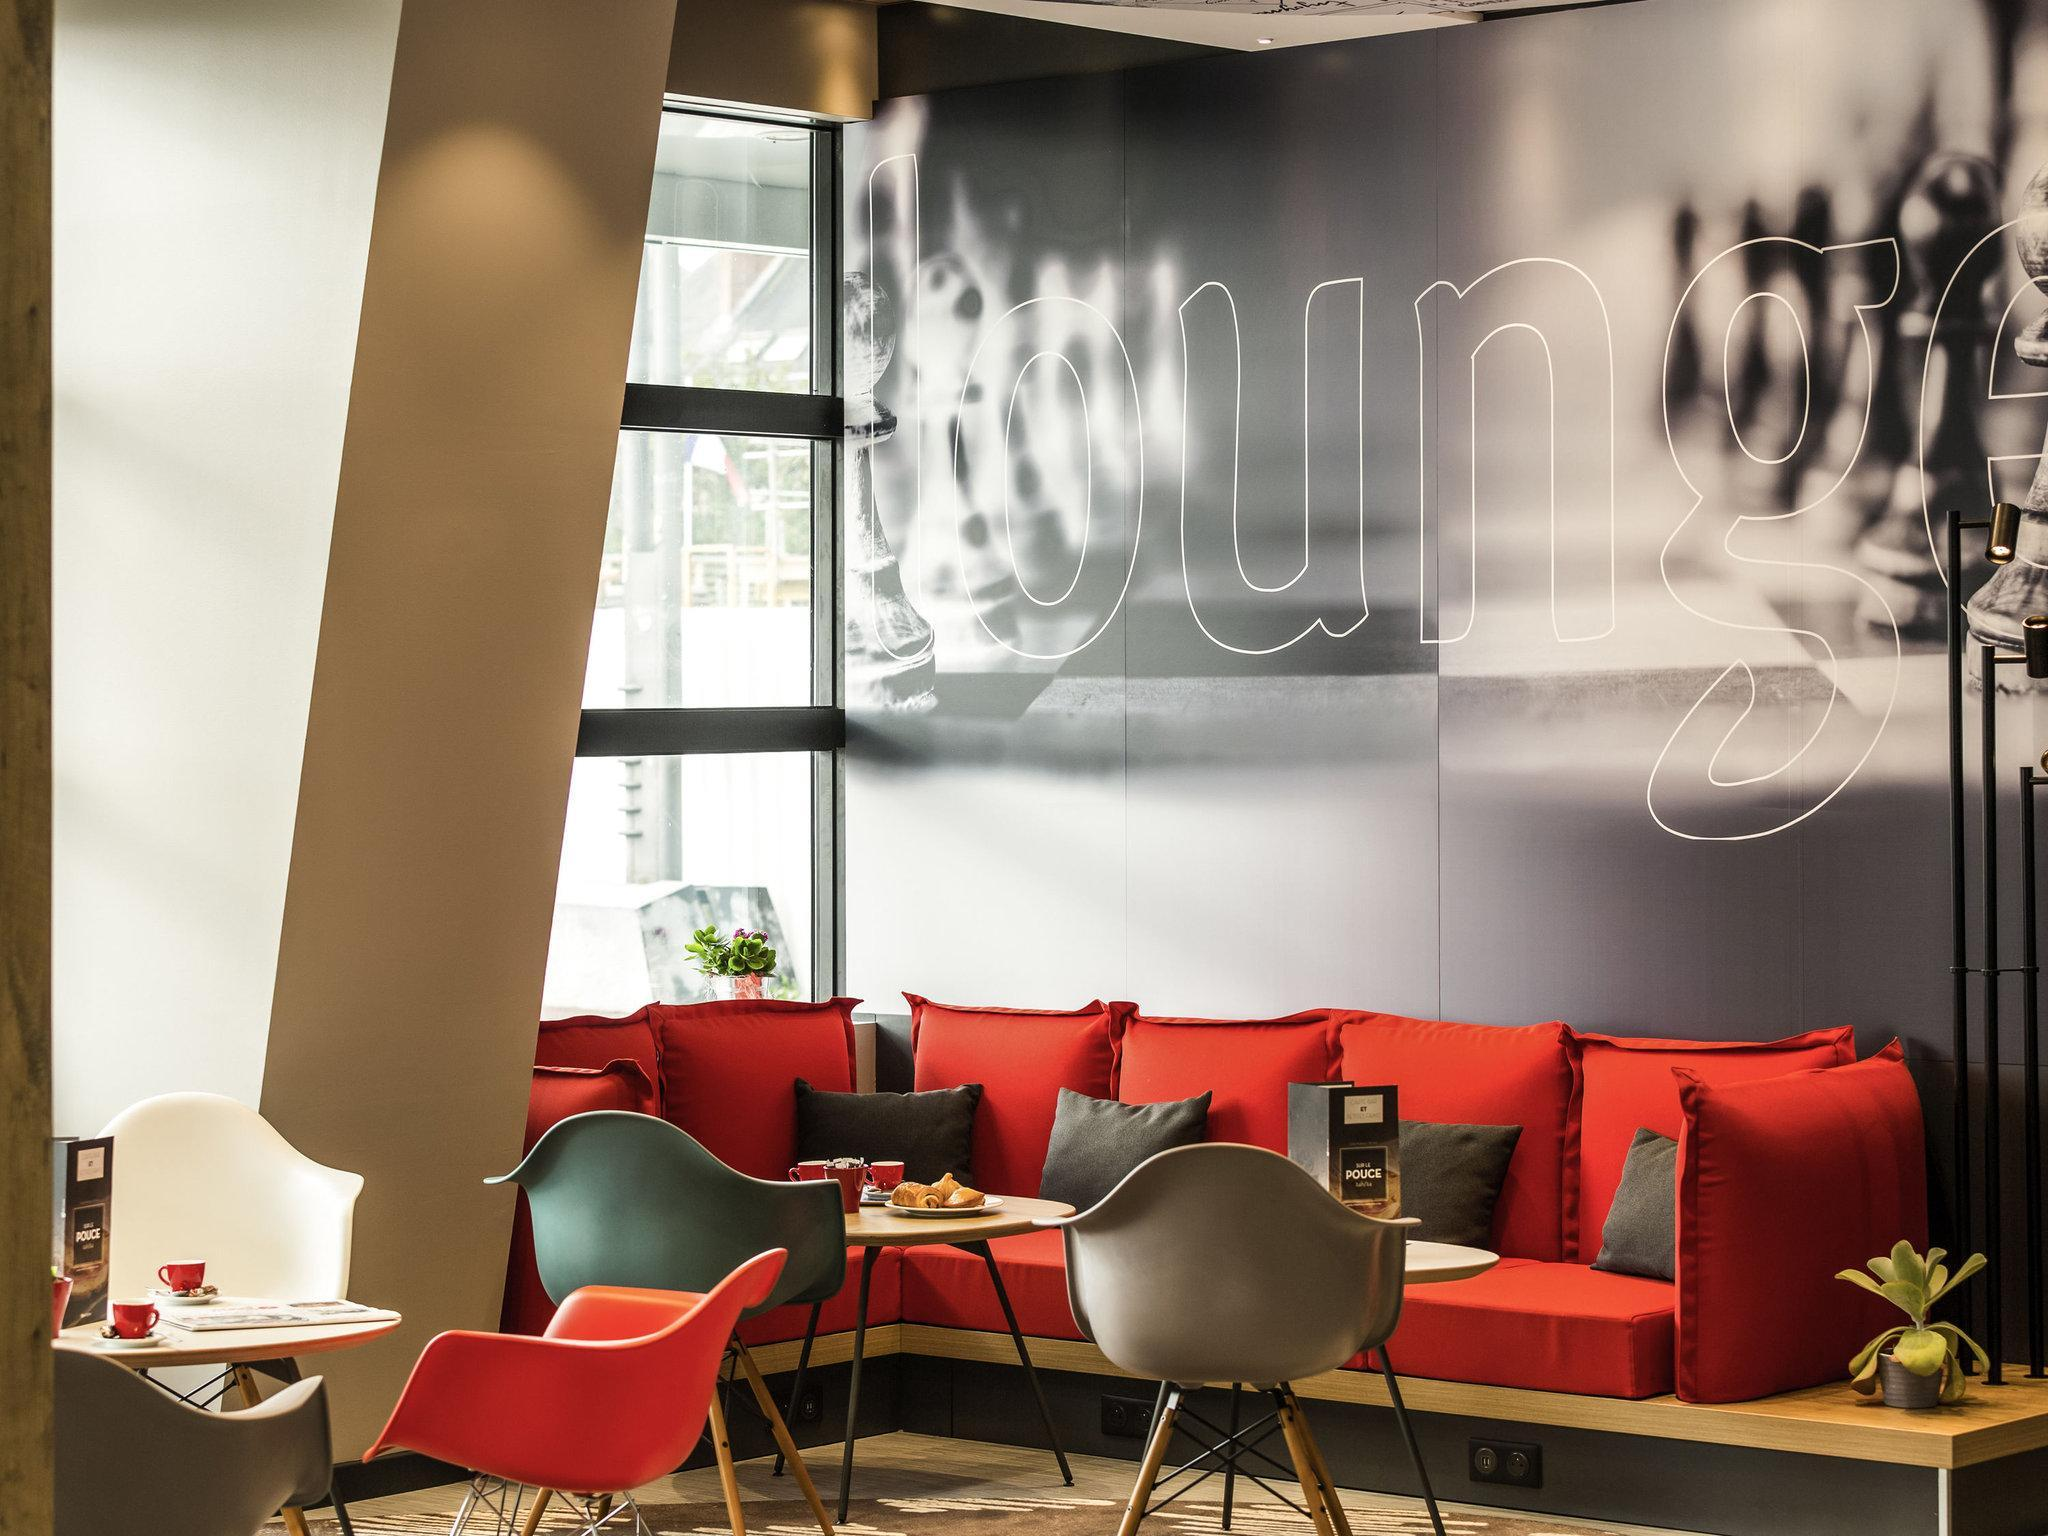 Location Decoration Rennes Ibis Rennes Centre Gare Sud In France Room Deals Photos Reviews